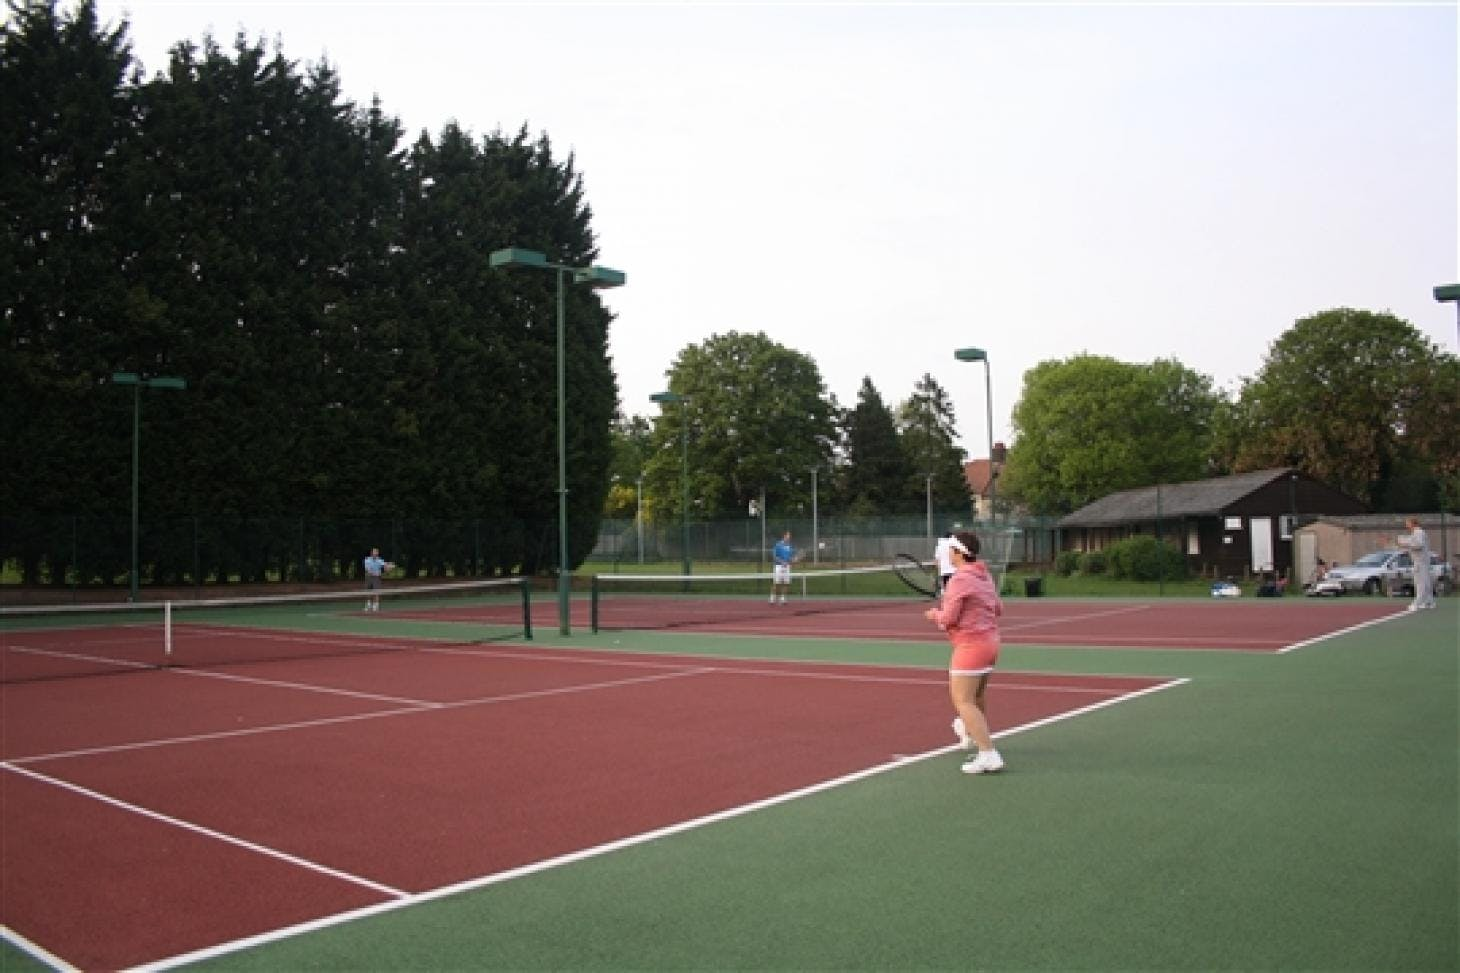 Brackendale Lawn Tennis Club Outdoor | Astroturf tennis court